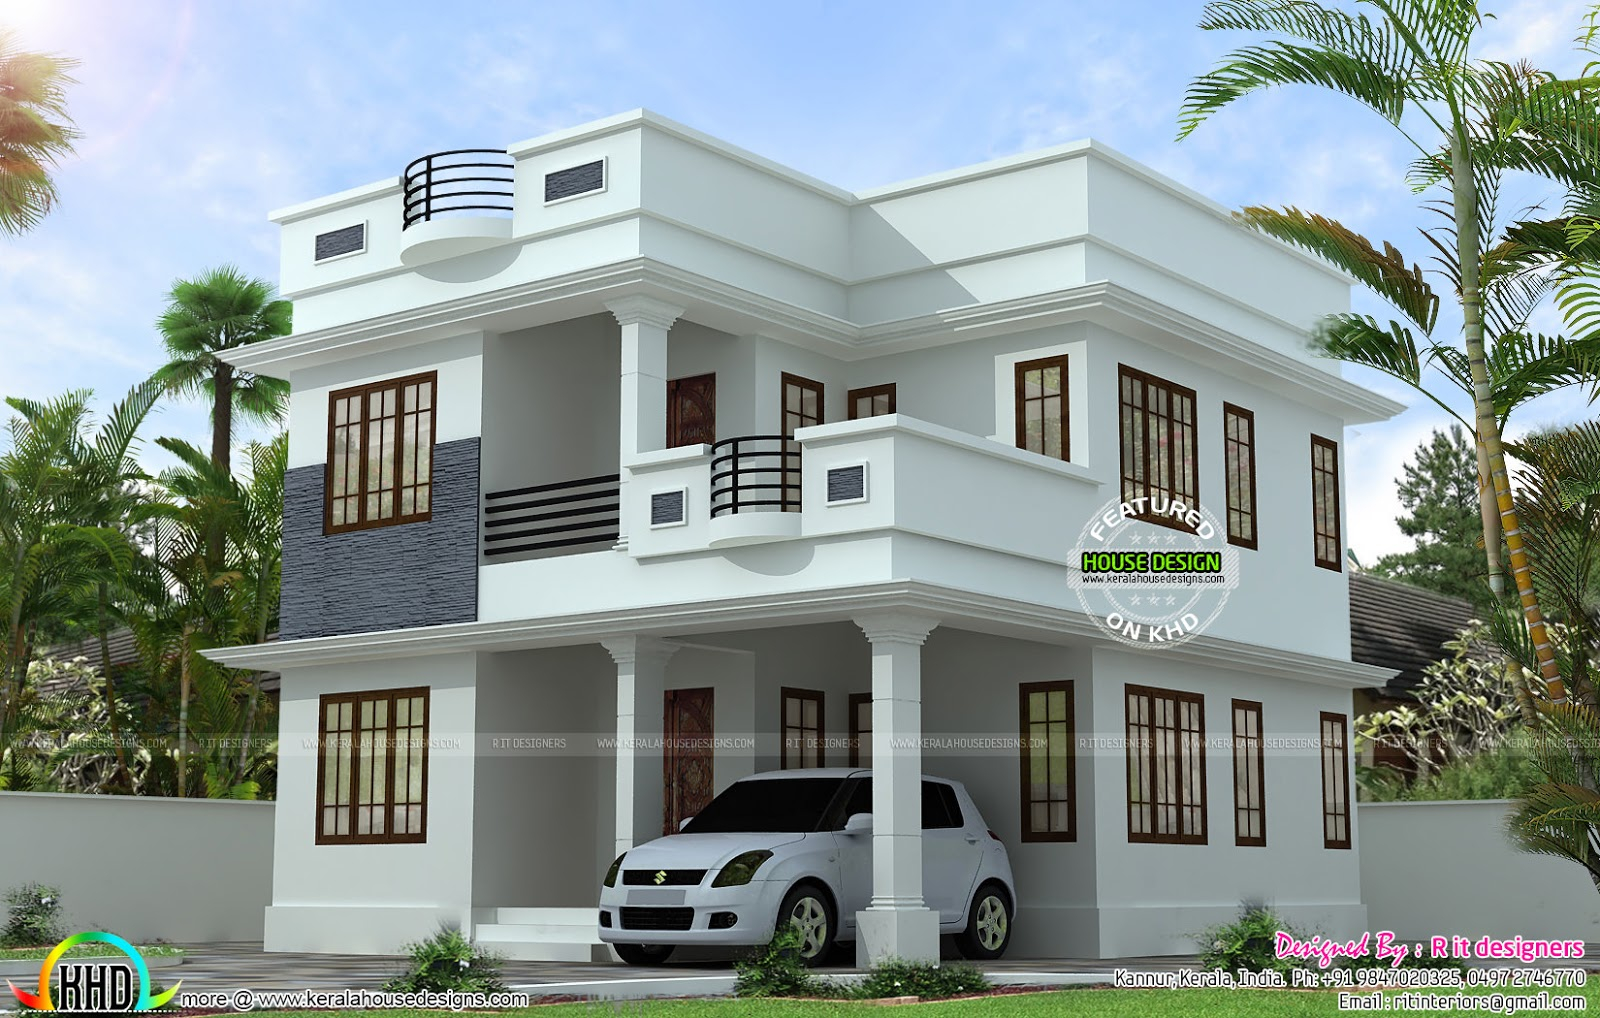 Picture of: Good Quality Simple Indian House Design Pictures Ideas House Generation